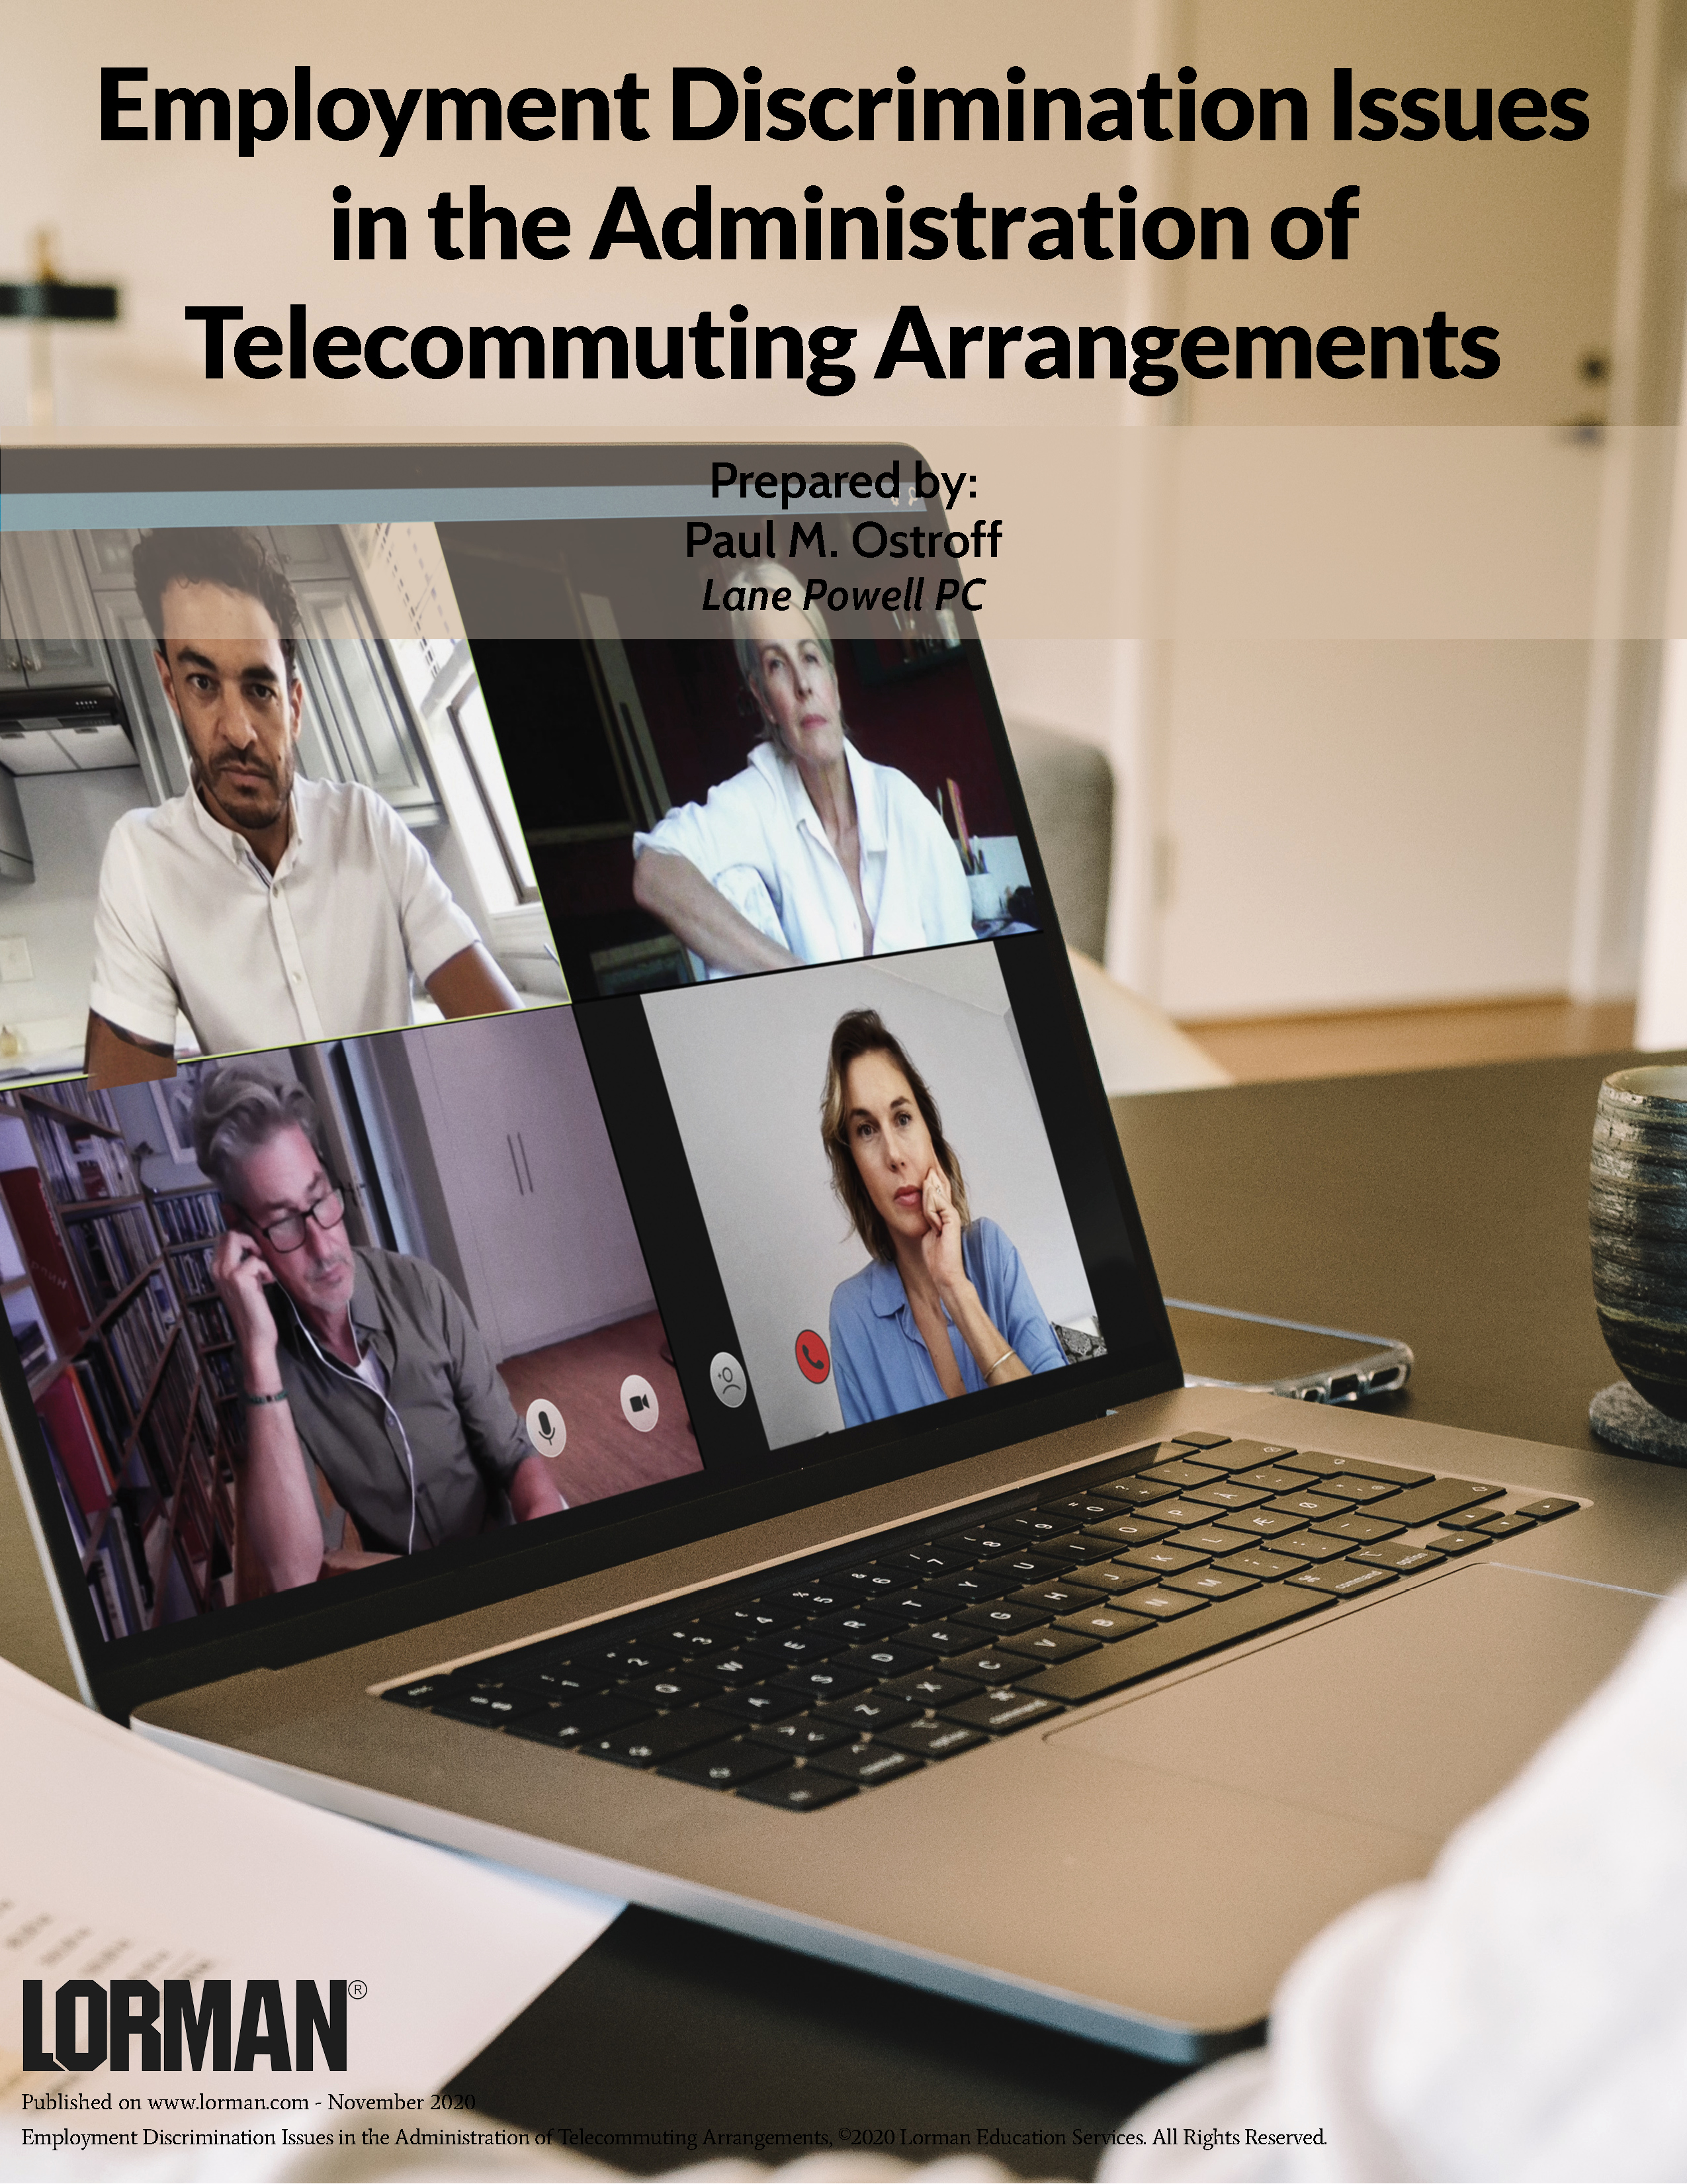 Employment Discrimination Issues in the Administration of Telecommuting Arrangements